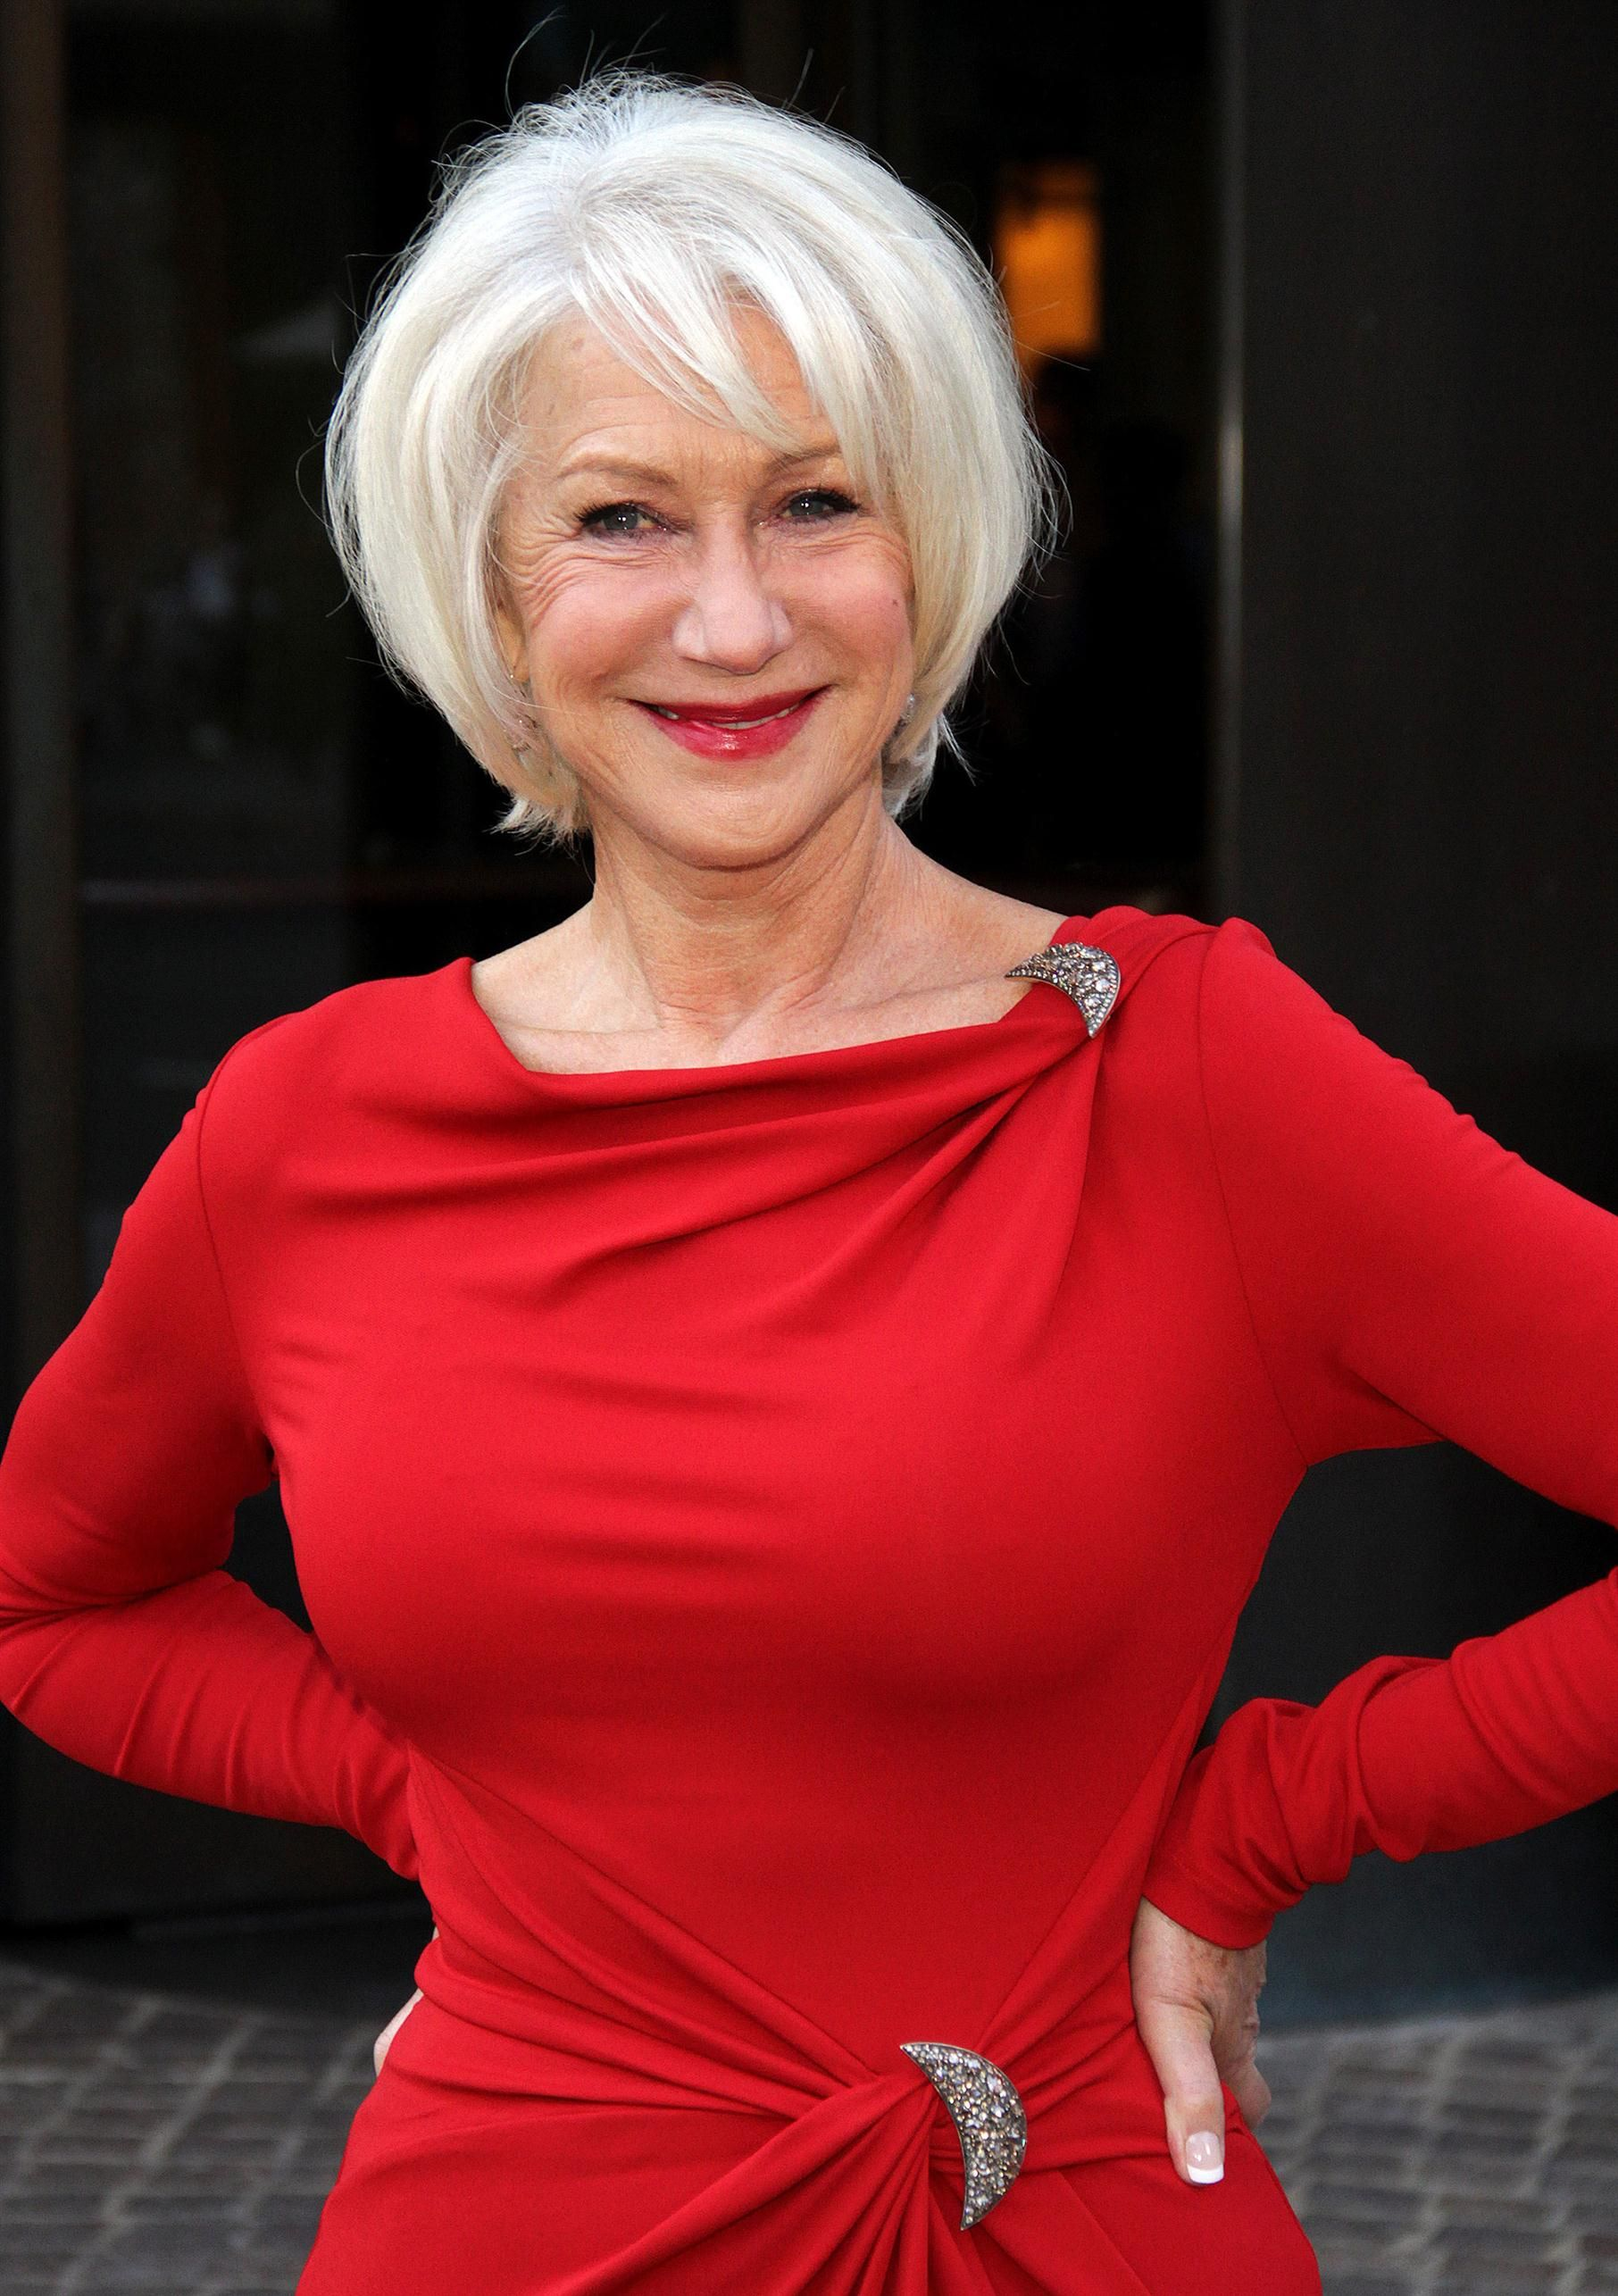 I know Helen Mirren is too young to play Gran, but that's what make-up is for! If I were casting the series for movies / TV, I'd love to have Helen Mirren as Gran / Adele Parker!